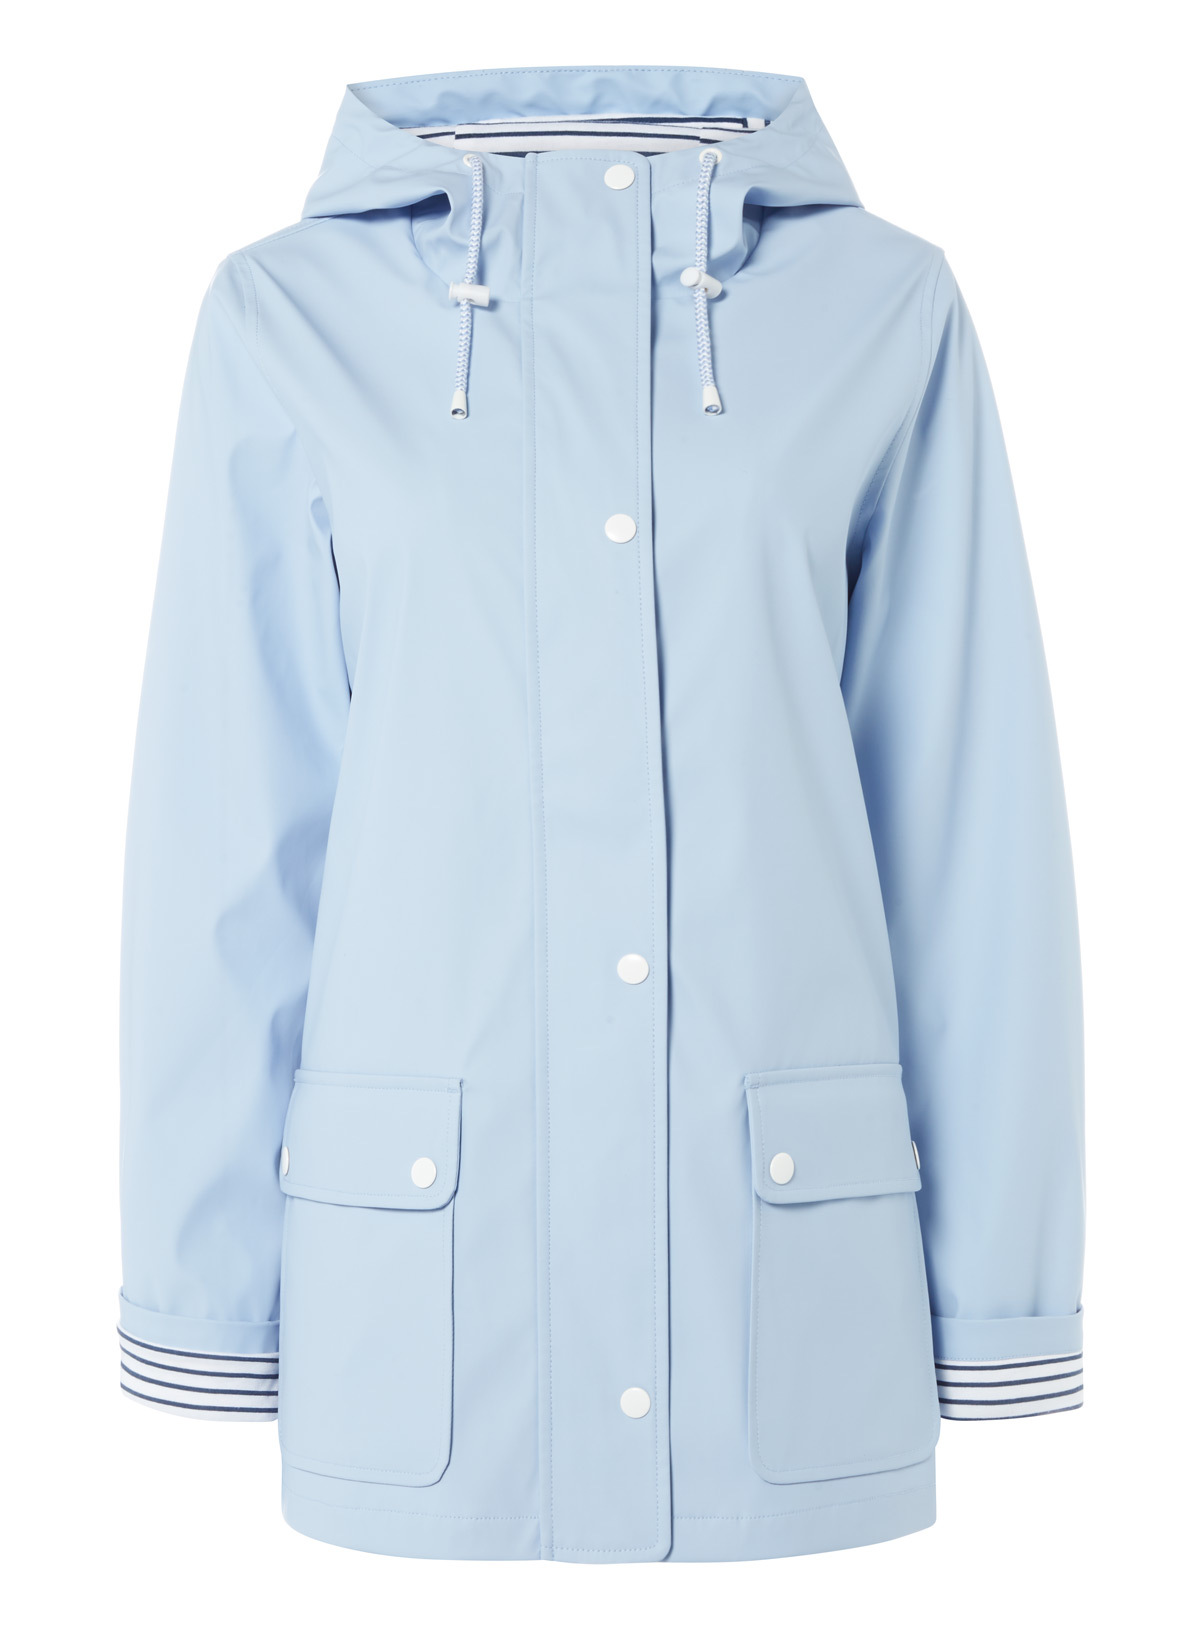 Womens Light Blue Rubber Coated Raincoat | Tu clothing